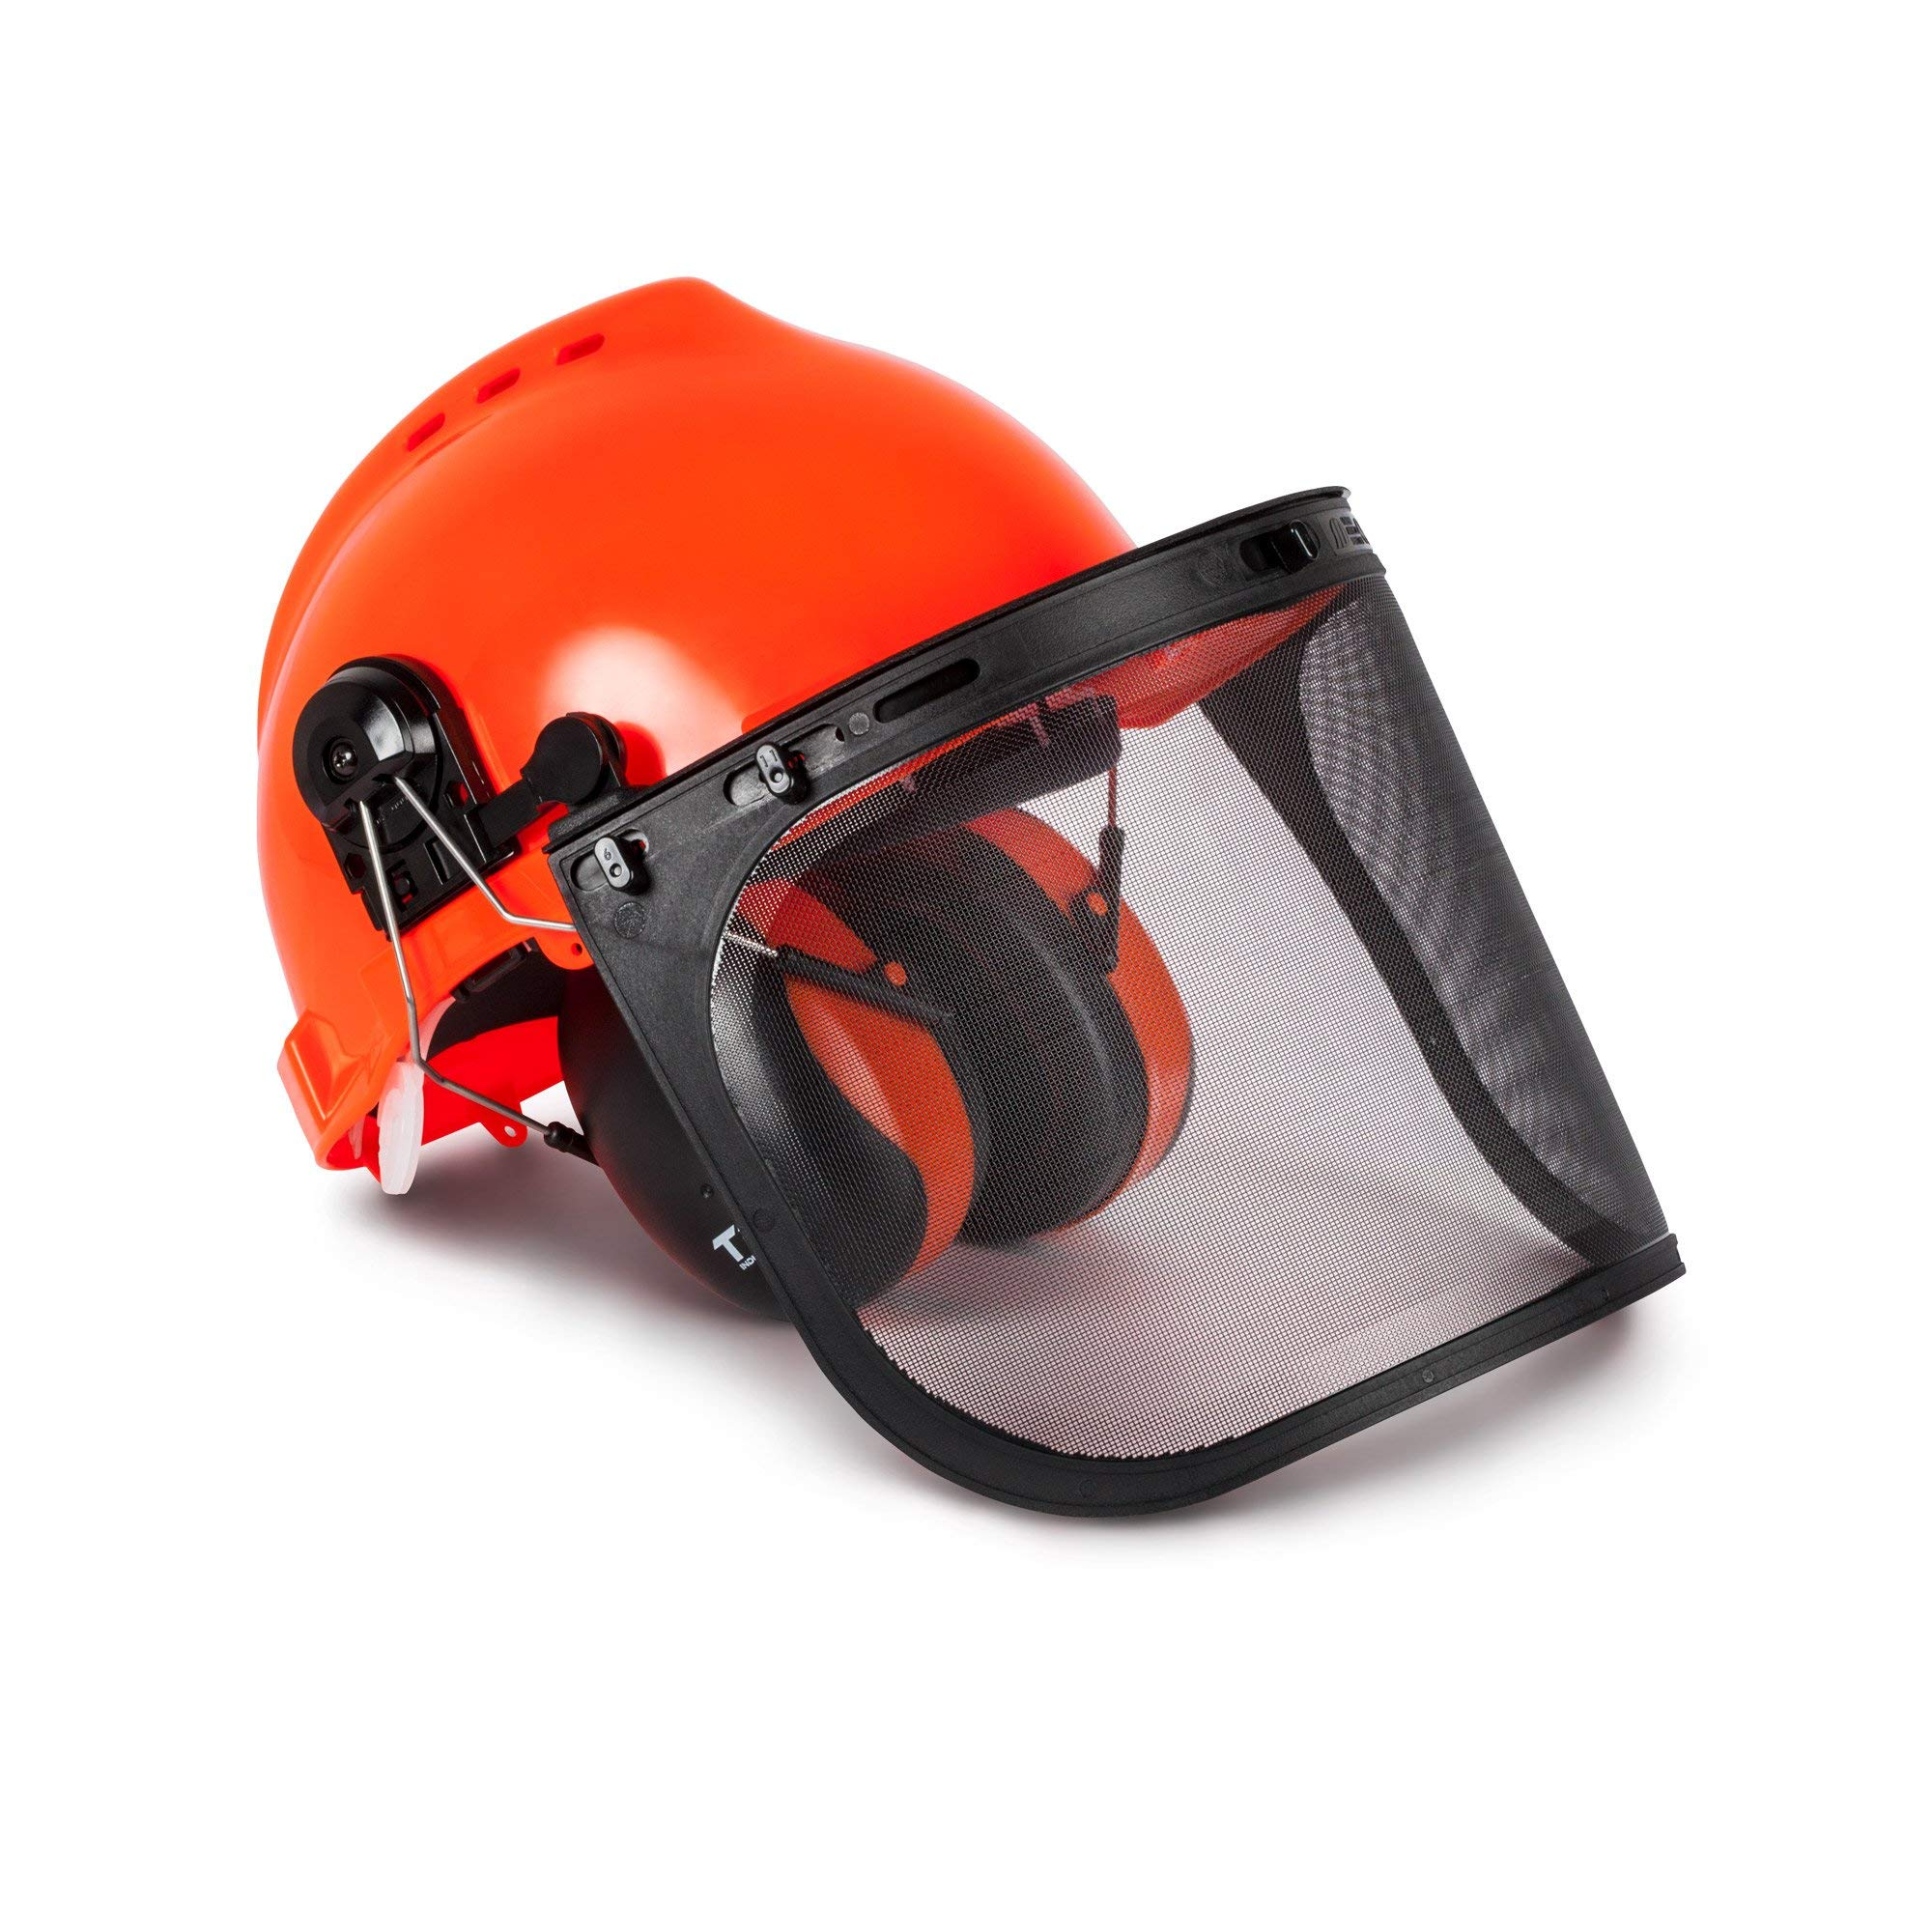 TR Industrial Forestry Safety Helmet and Hearing Protection System (Renewed)